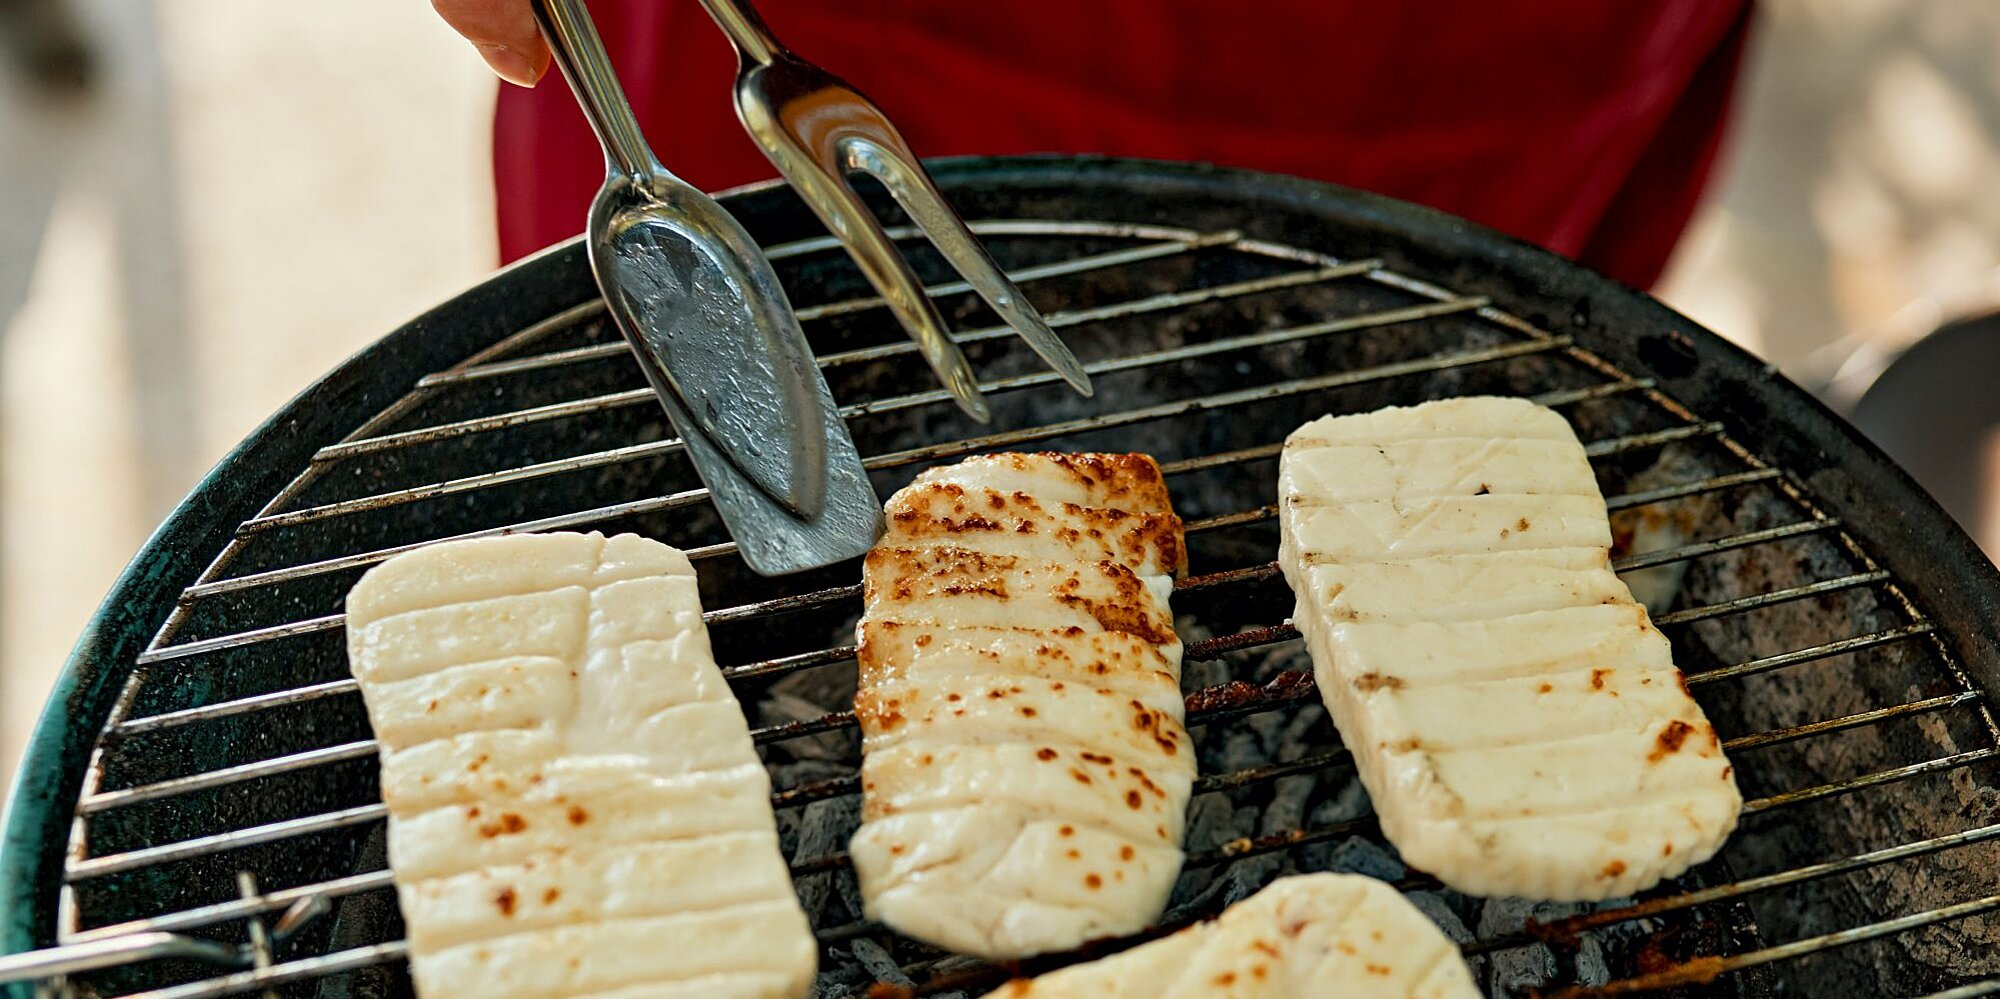 What Are the Best Cheeses for Grilling?